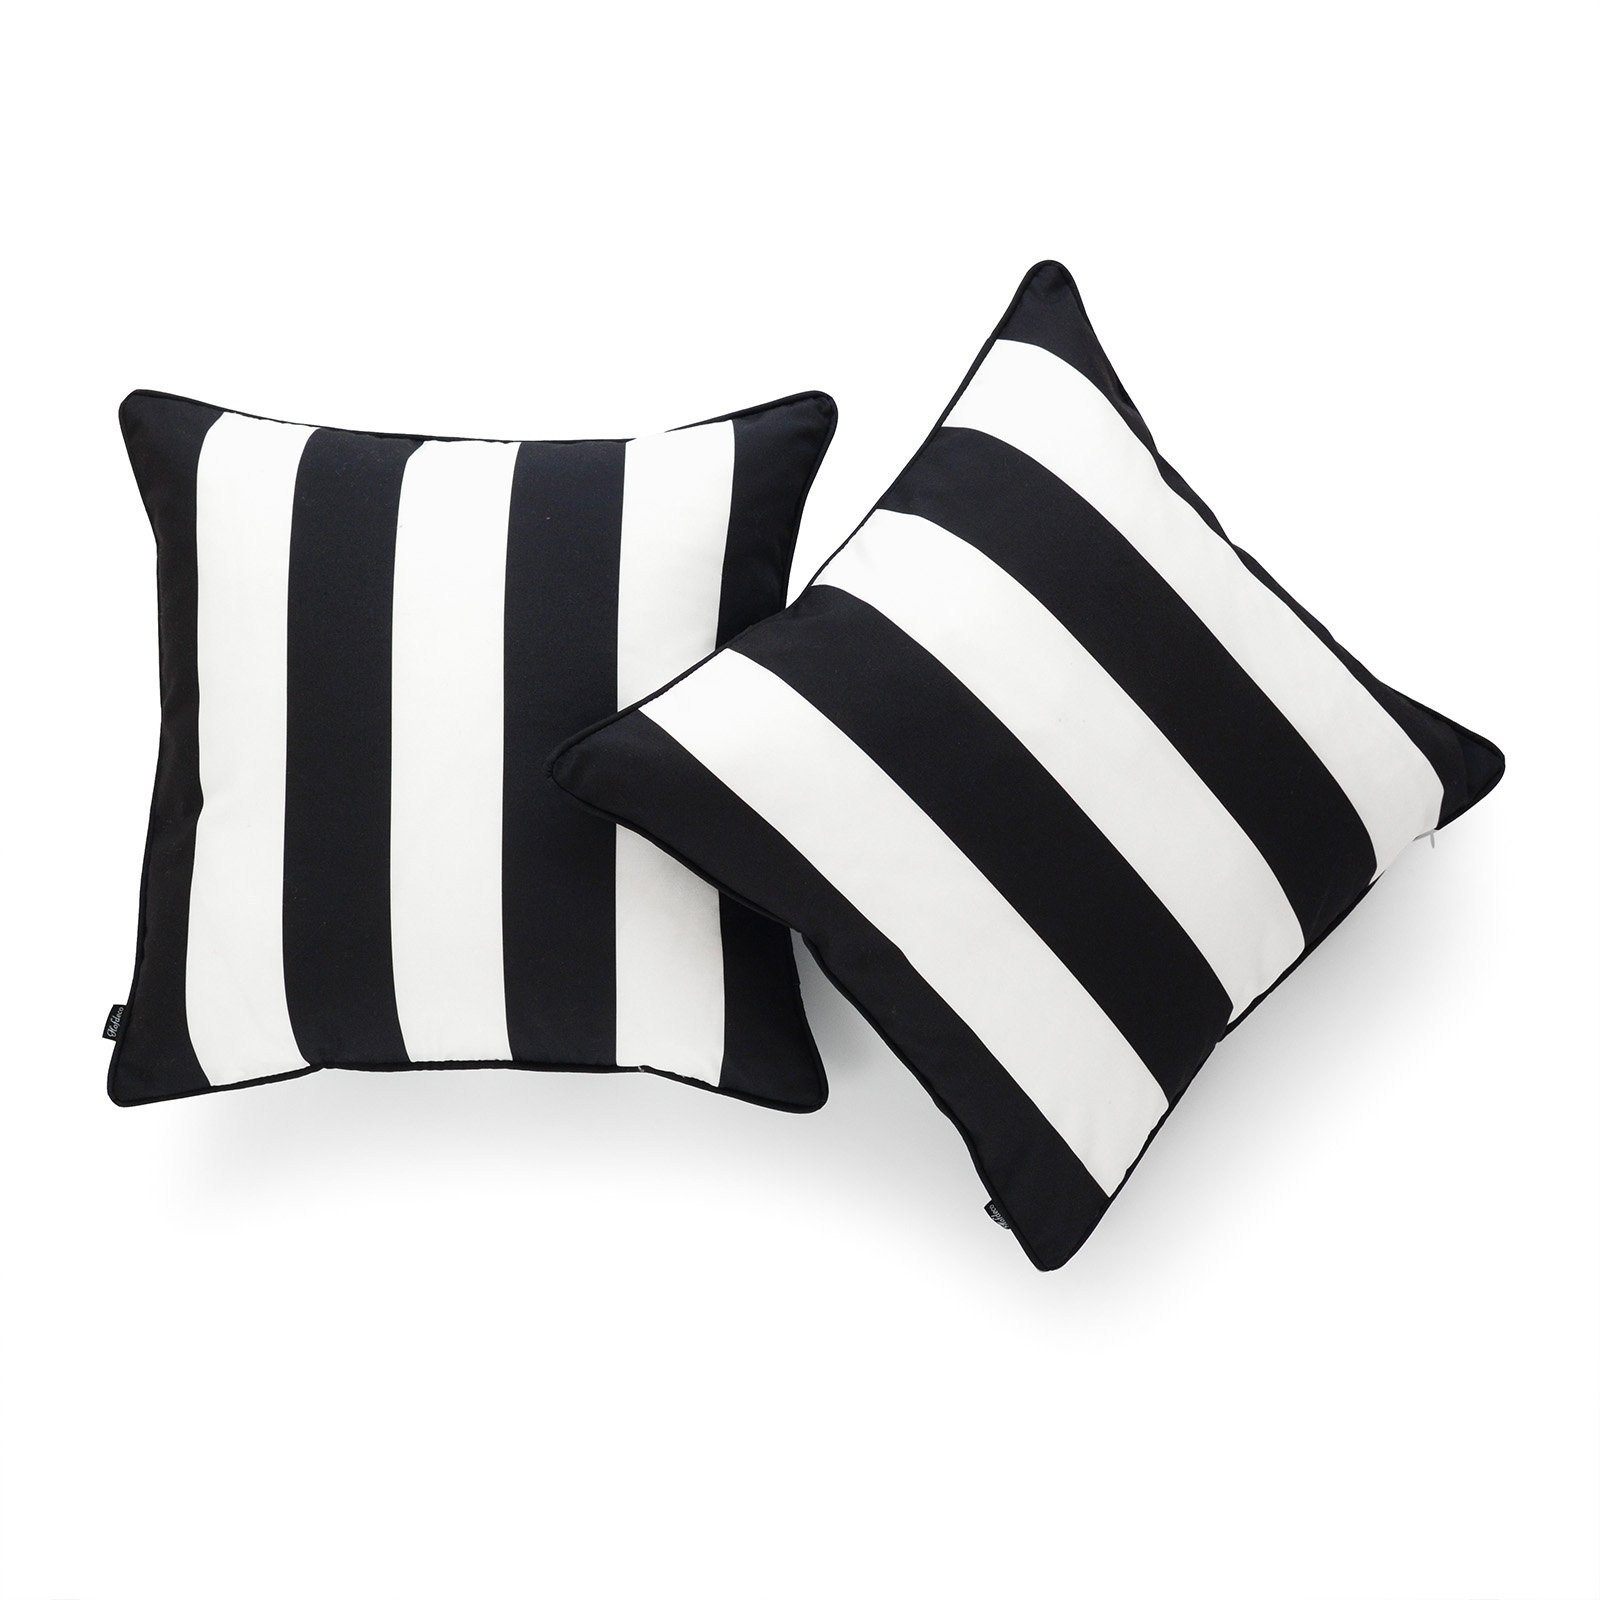 Hofdeco Indoor Outdoor Cushion Cover Only Water Resistant For Patio Lounge Sofa Black White Stripes 45cmx45cm Set Of 2 Cushion Covers Au